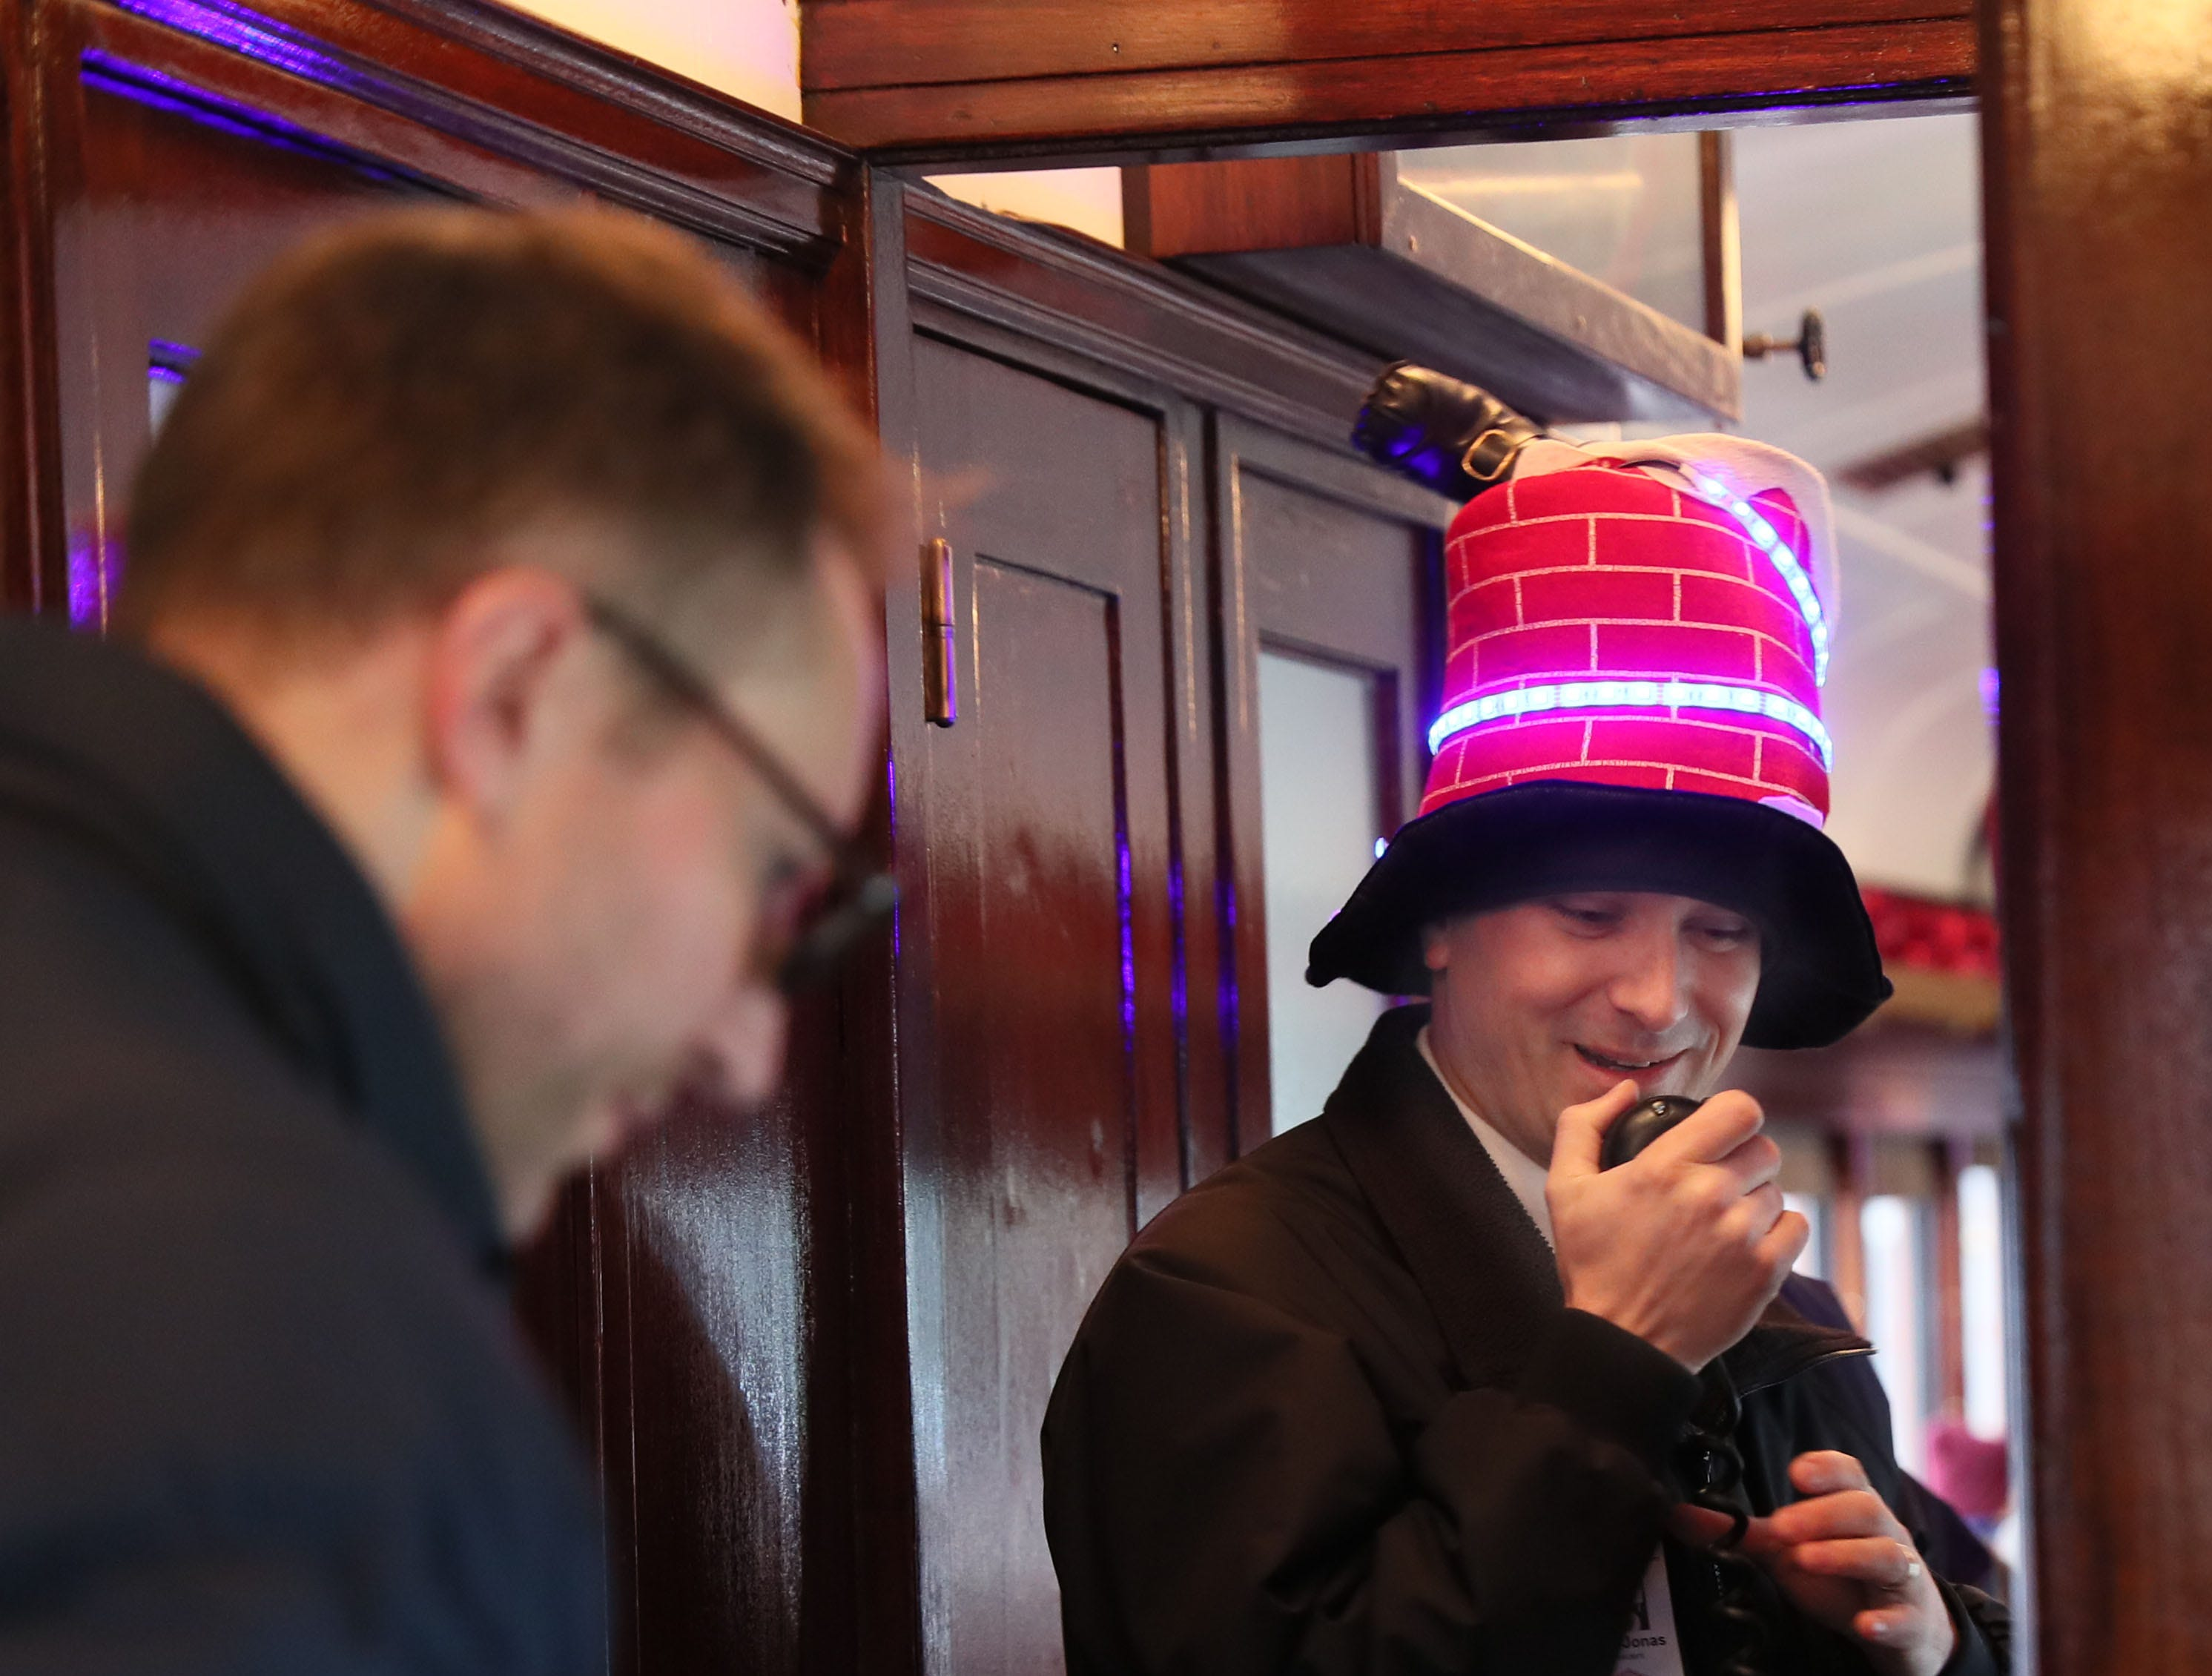 Conductor Ryan Jonas makes announcements to the passengers. His hat depicts Santa going down a chimney headfirst.